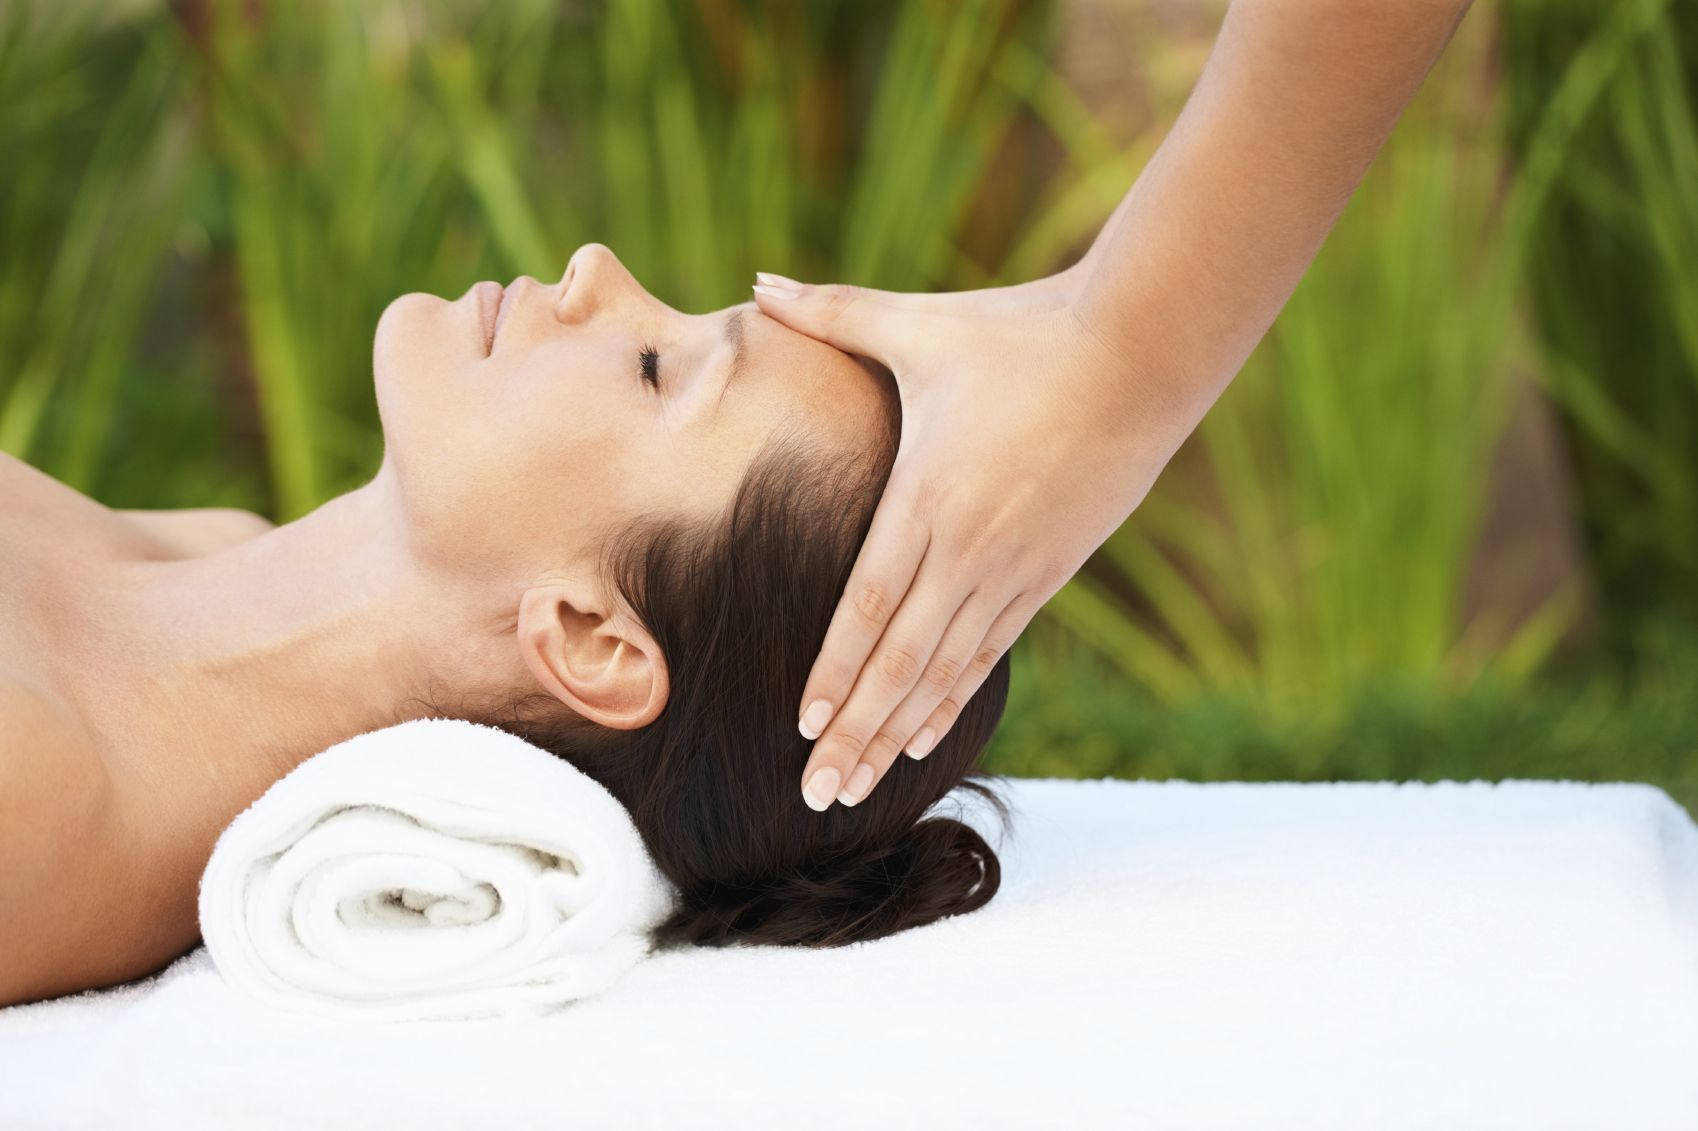 Maginficant massages at chaminade resort are